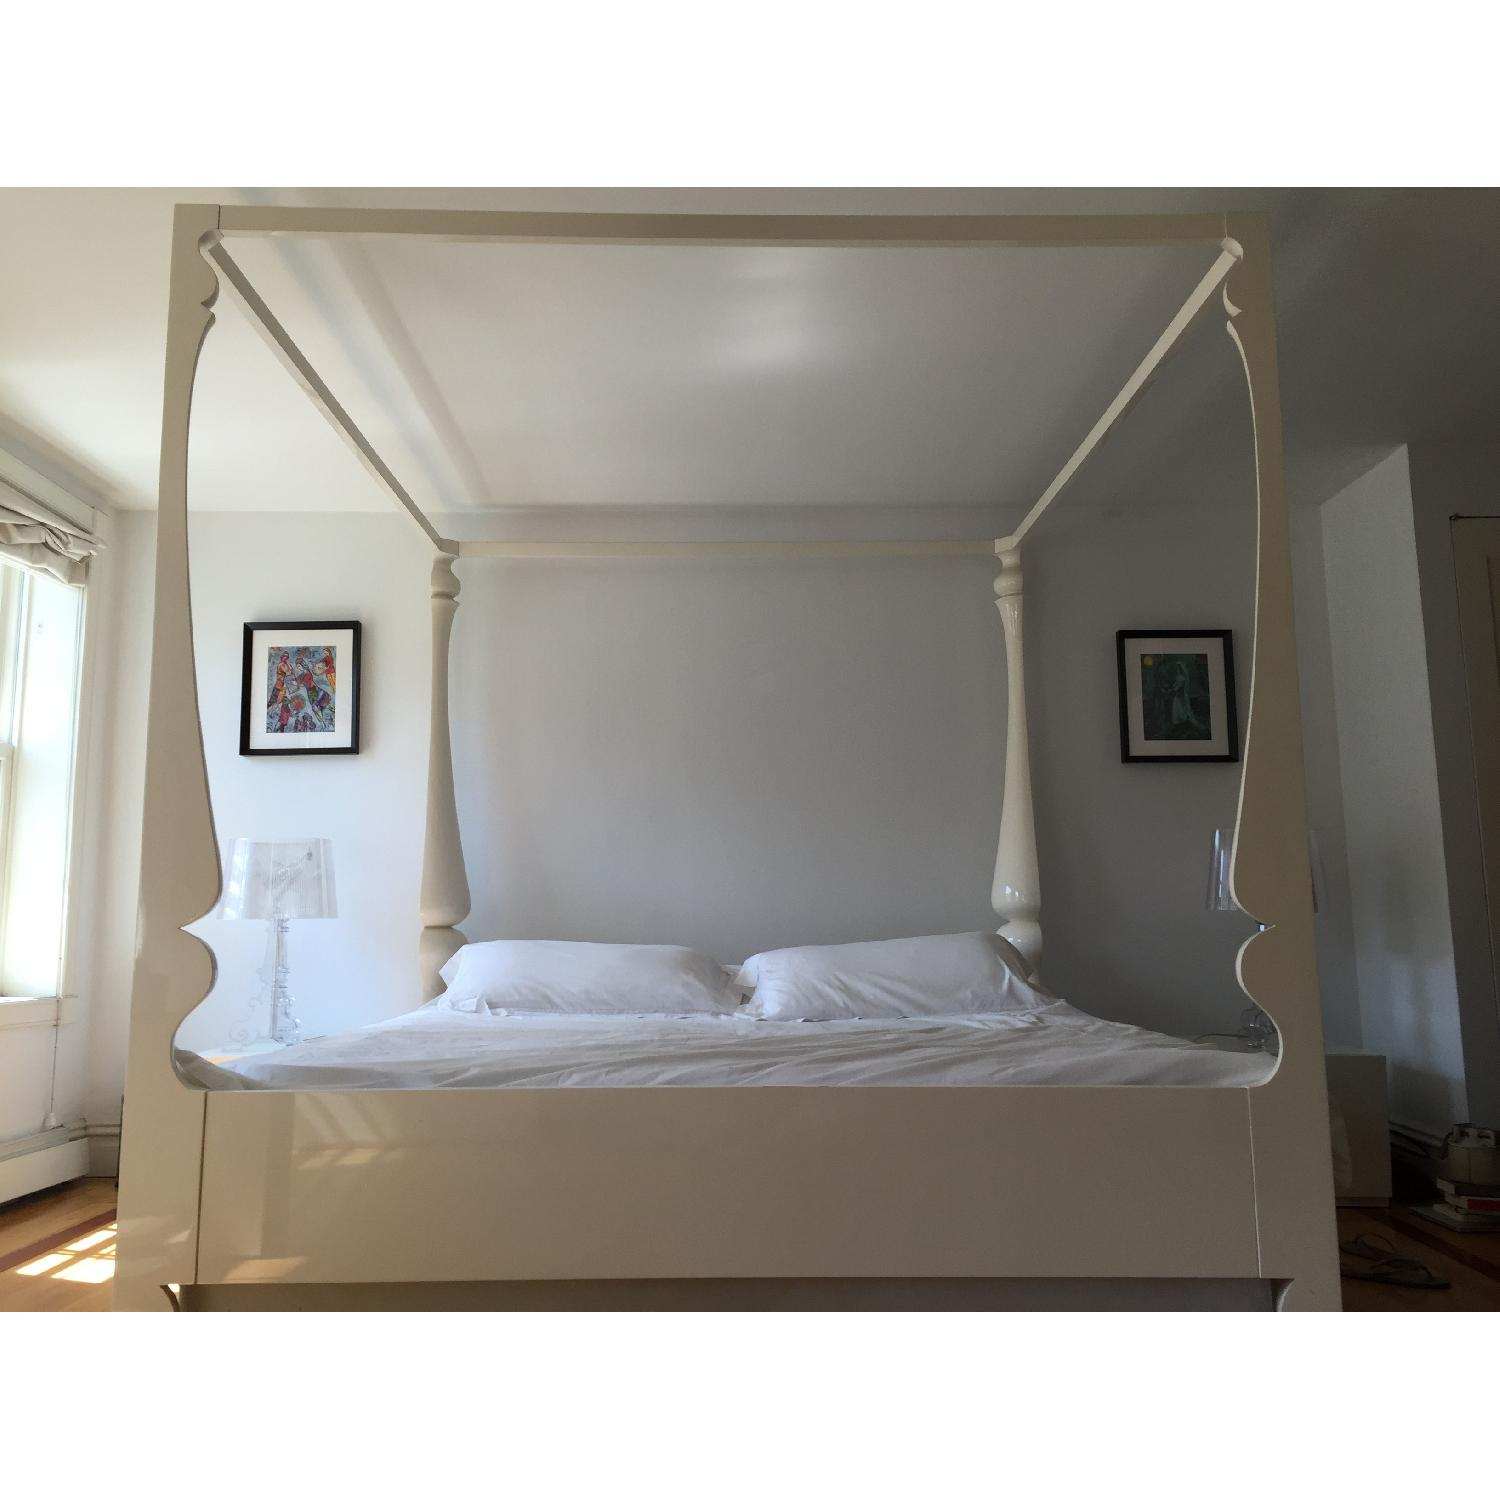 Reeves Design Louis Four Poster King Bed in White - image-1